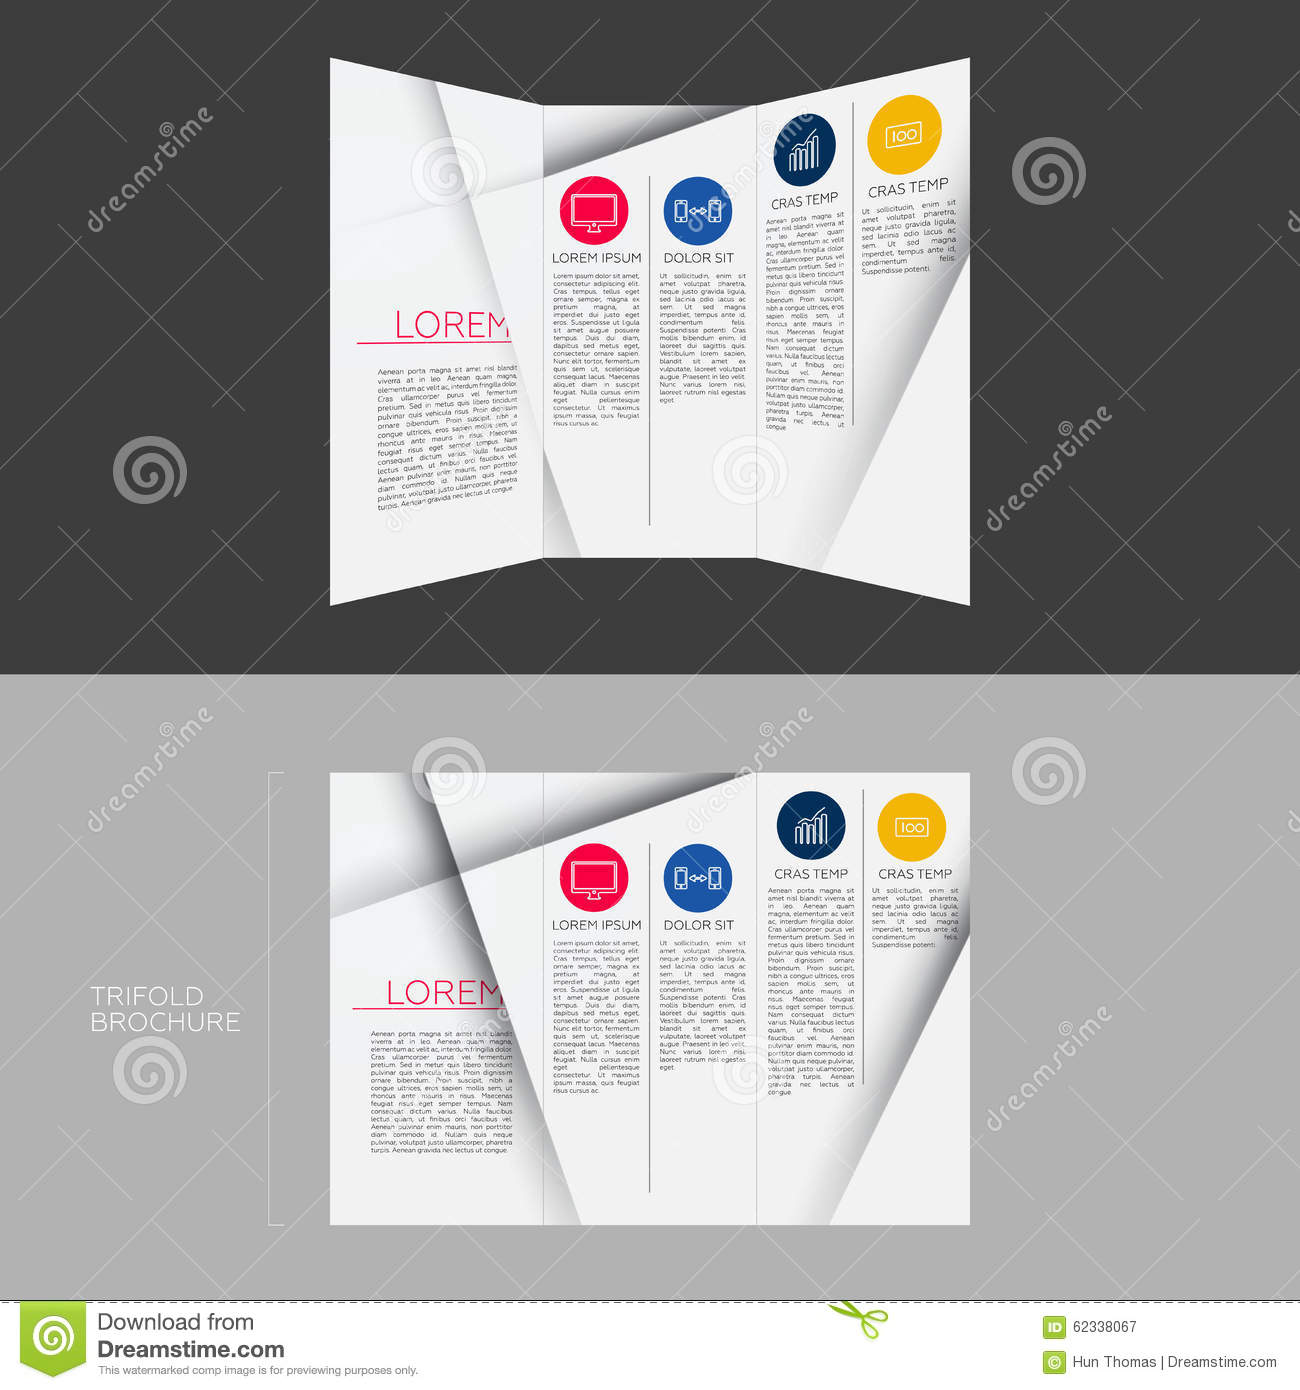 Powerpoint brochure templates choice image templates example unusual free medical brochure templates gallery resume ideas powerpoint brochure template tri fold gallery templates example alramifo Images